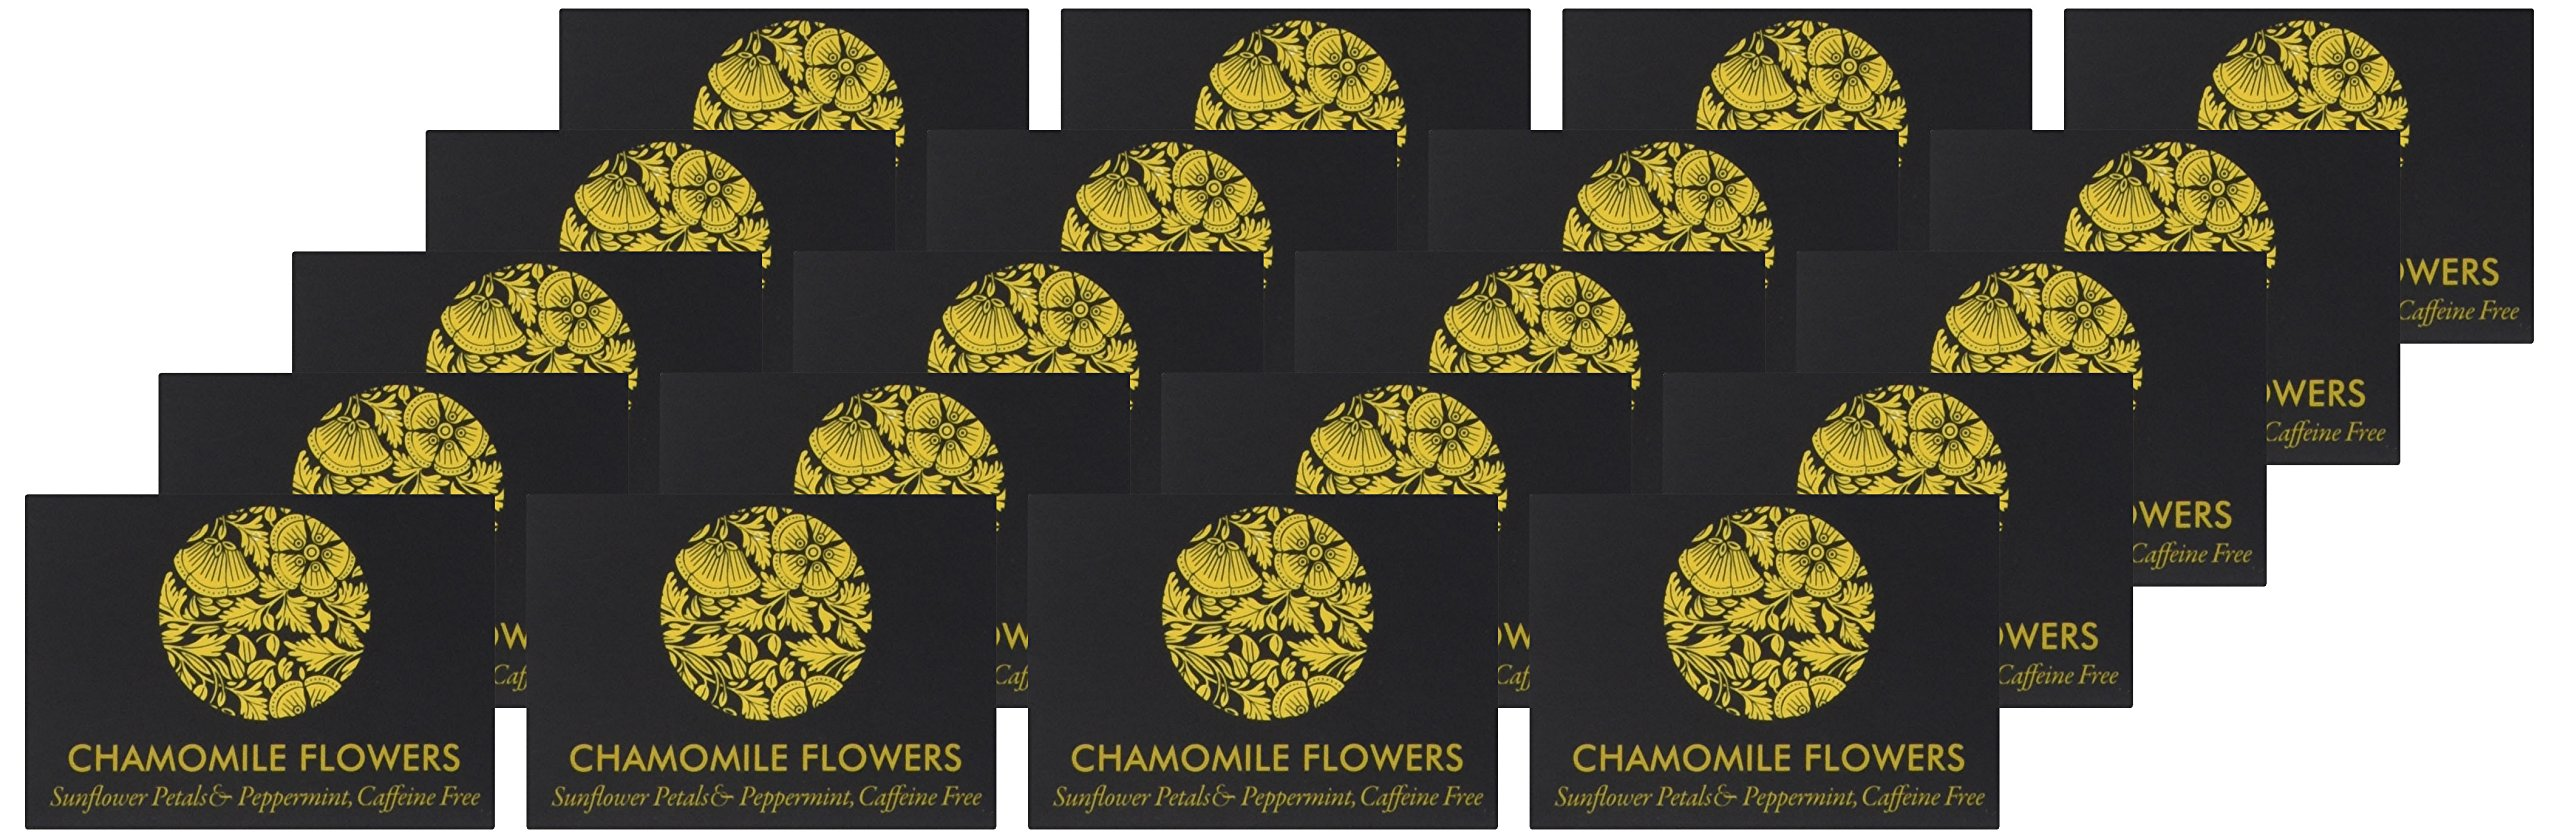 Ceremonie Tea Variety Sampler Gift Pack - A Collection Organized in 10 Assorted Sample Flavors, Set of 2 Each Mini Cube Tea Bags (20 total Bags)